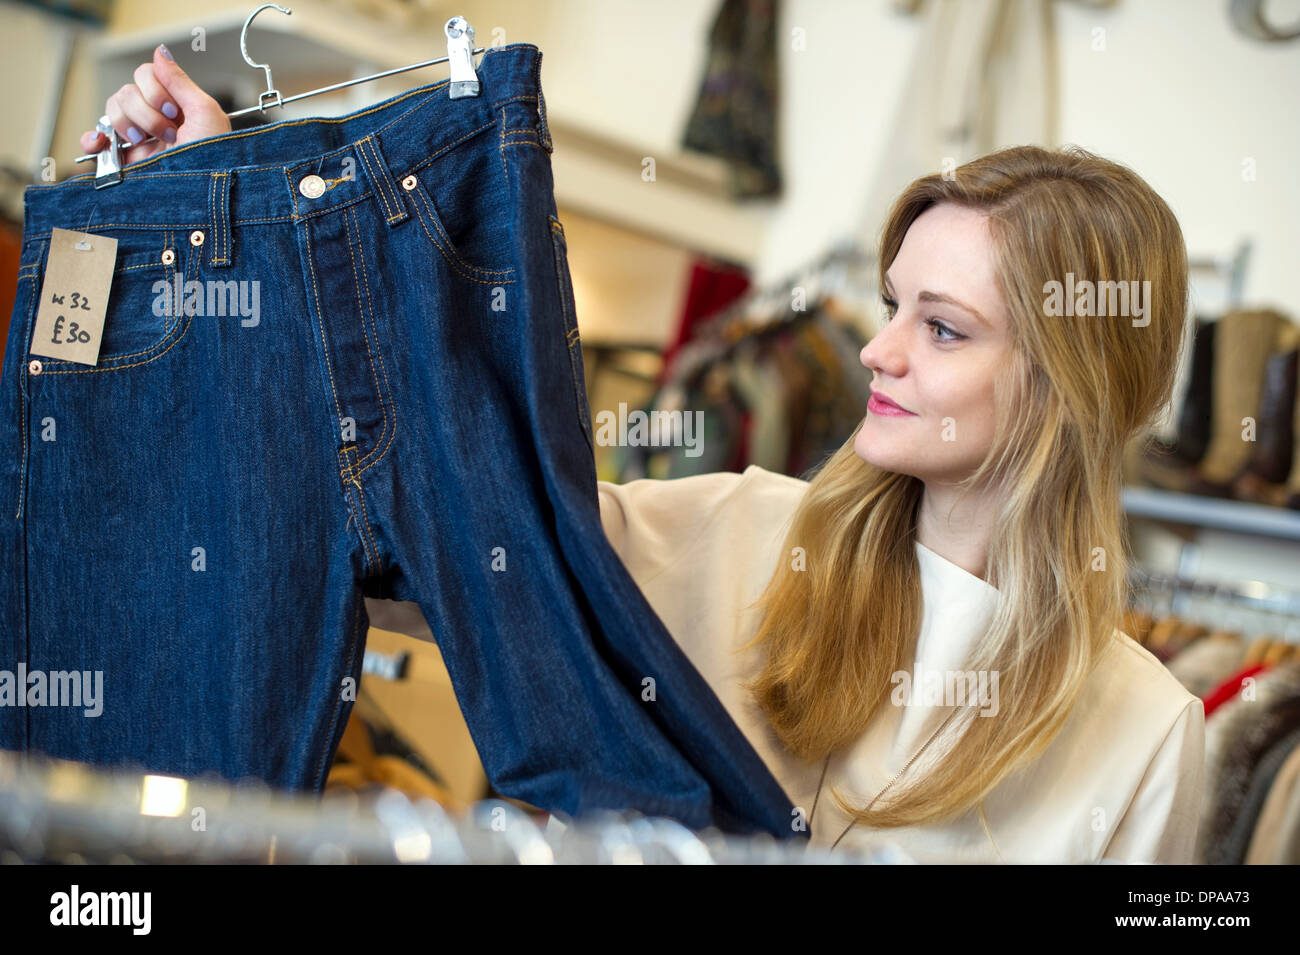 Woman jeans Photo Stock